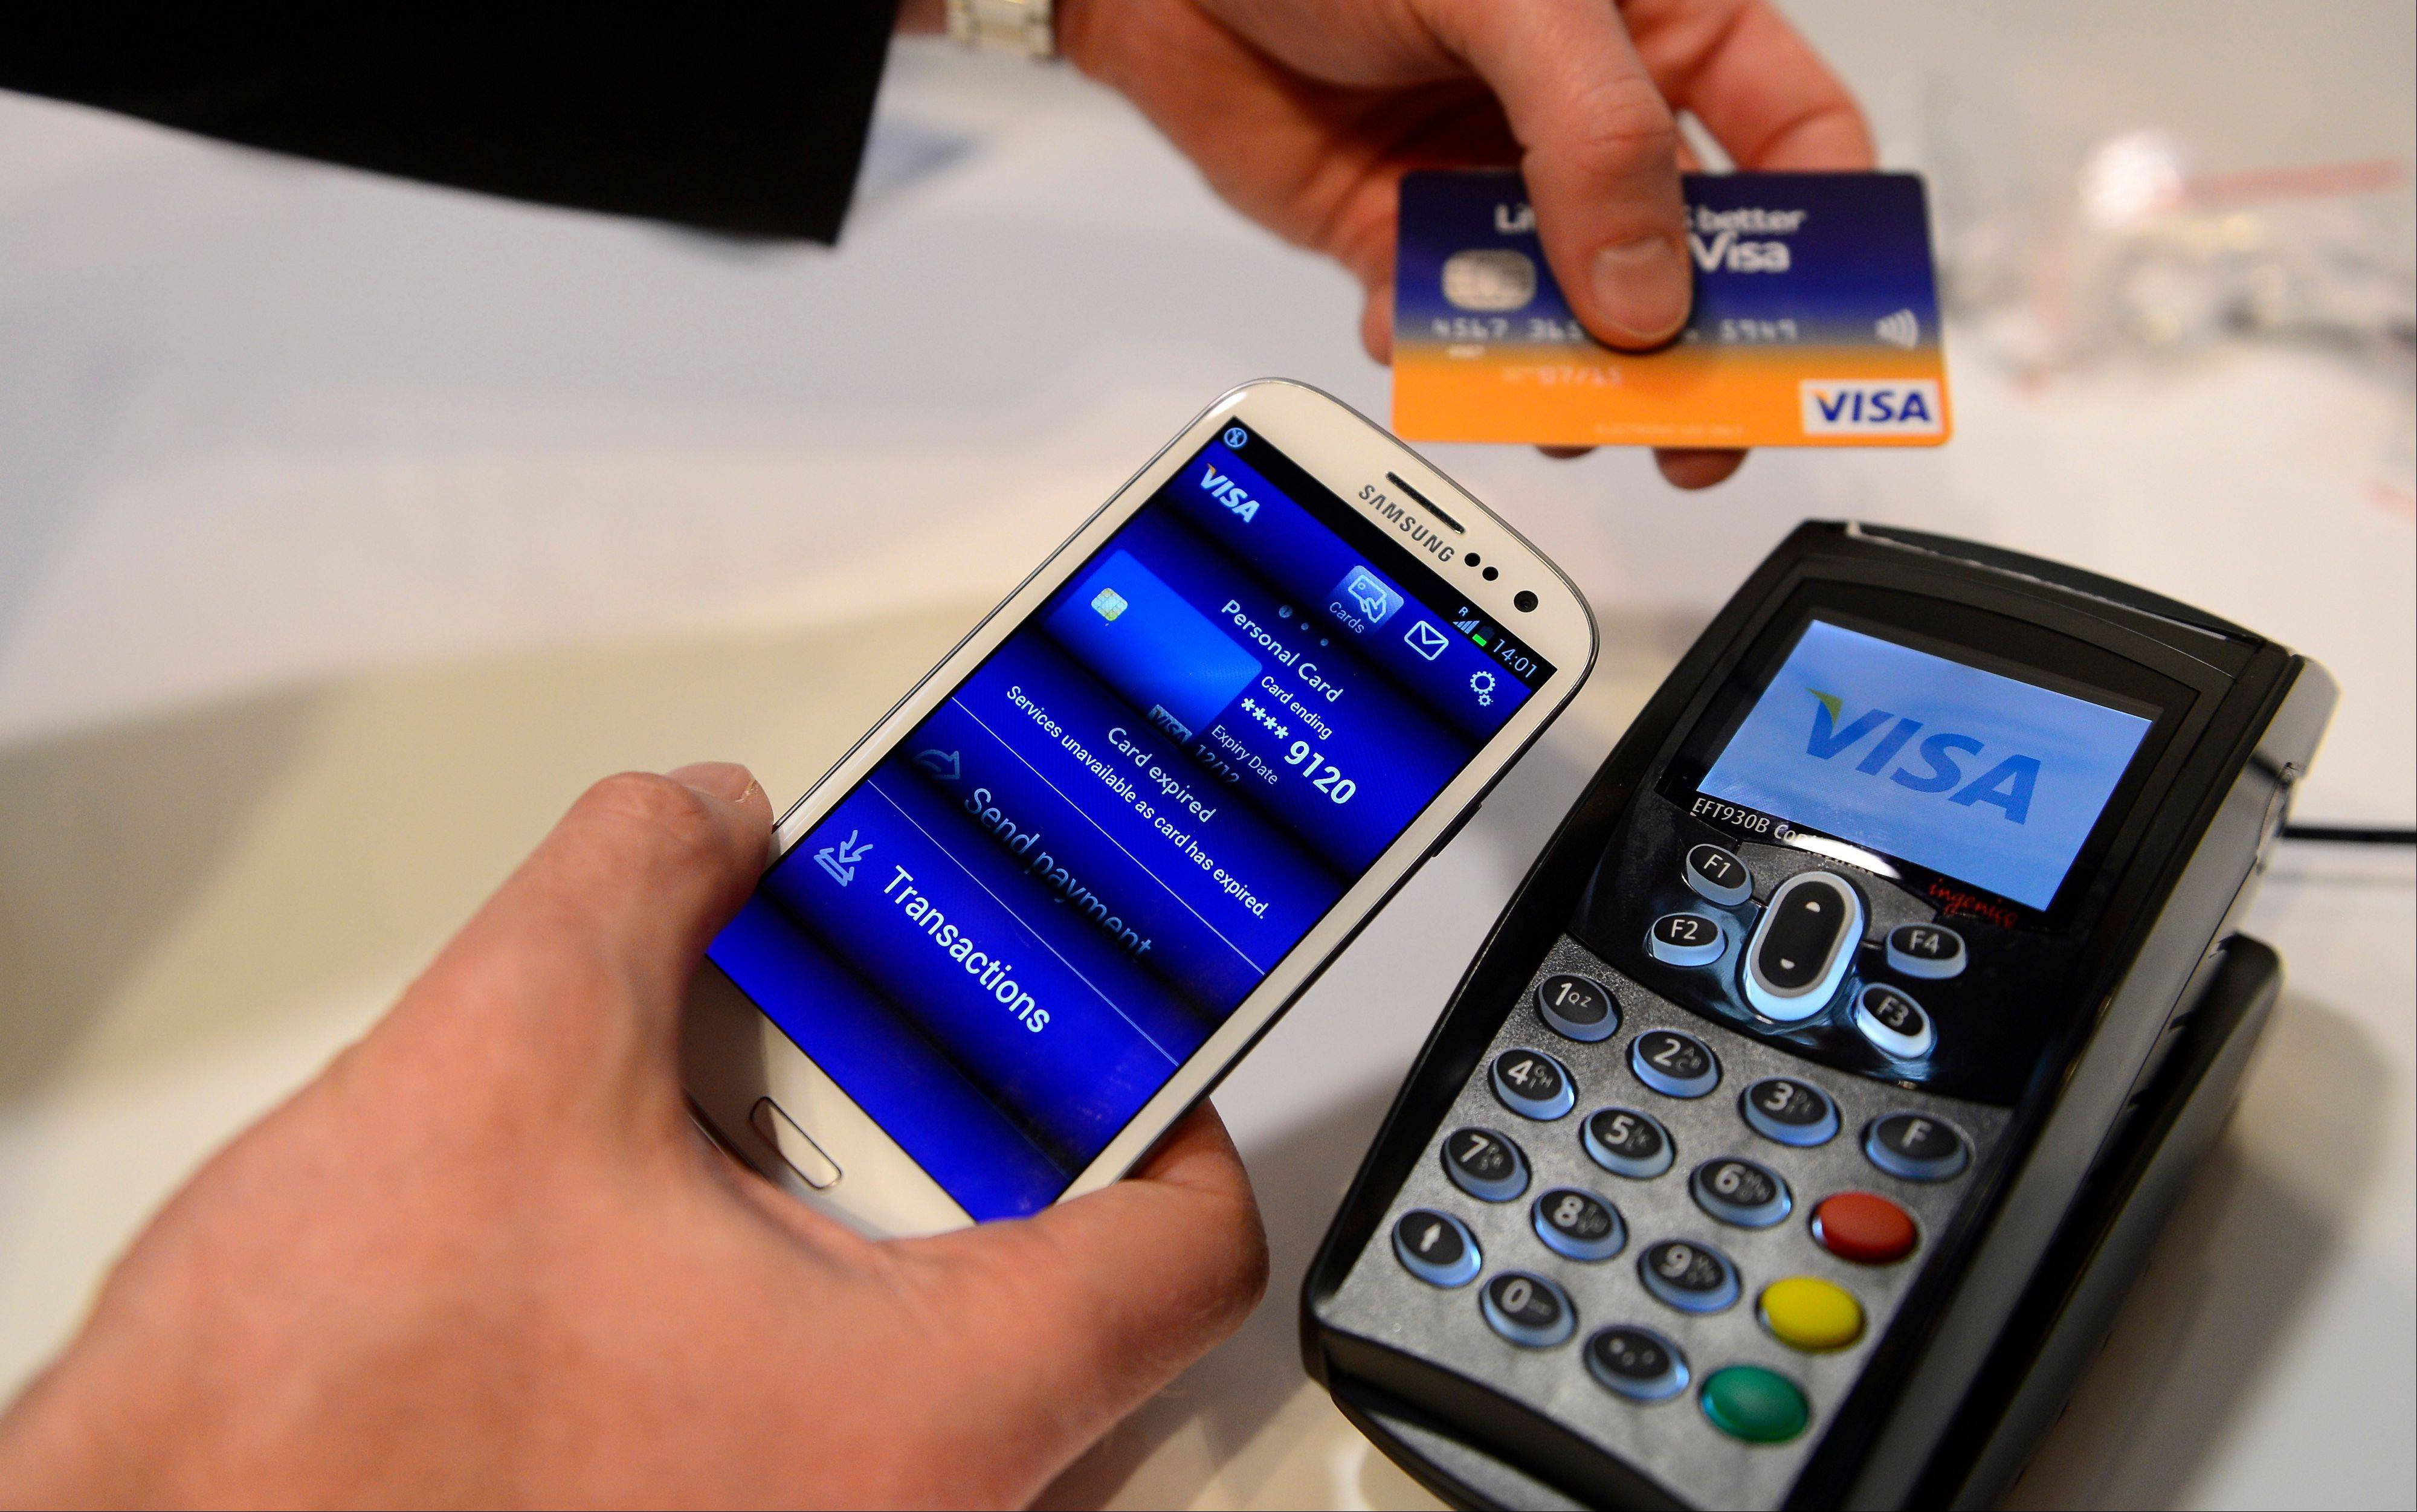 A man uses the NFC payment Visa system at the Mobile World Congress, the world�s largest mobile phone trade show, in Barcelona, Spain.